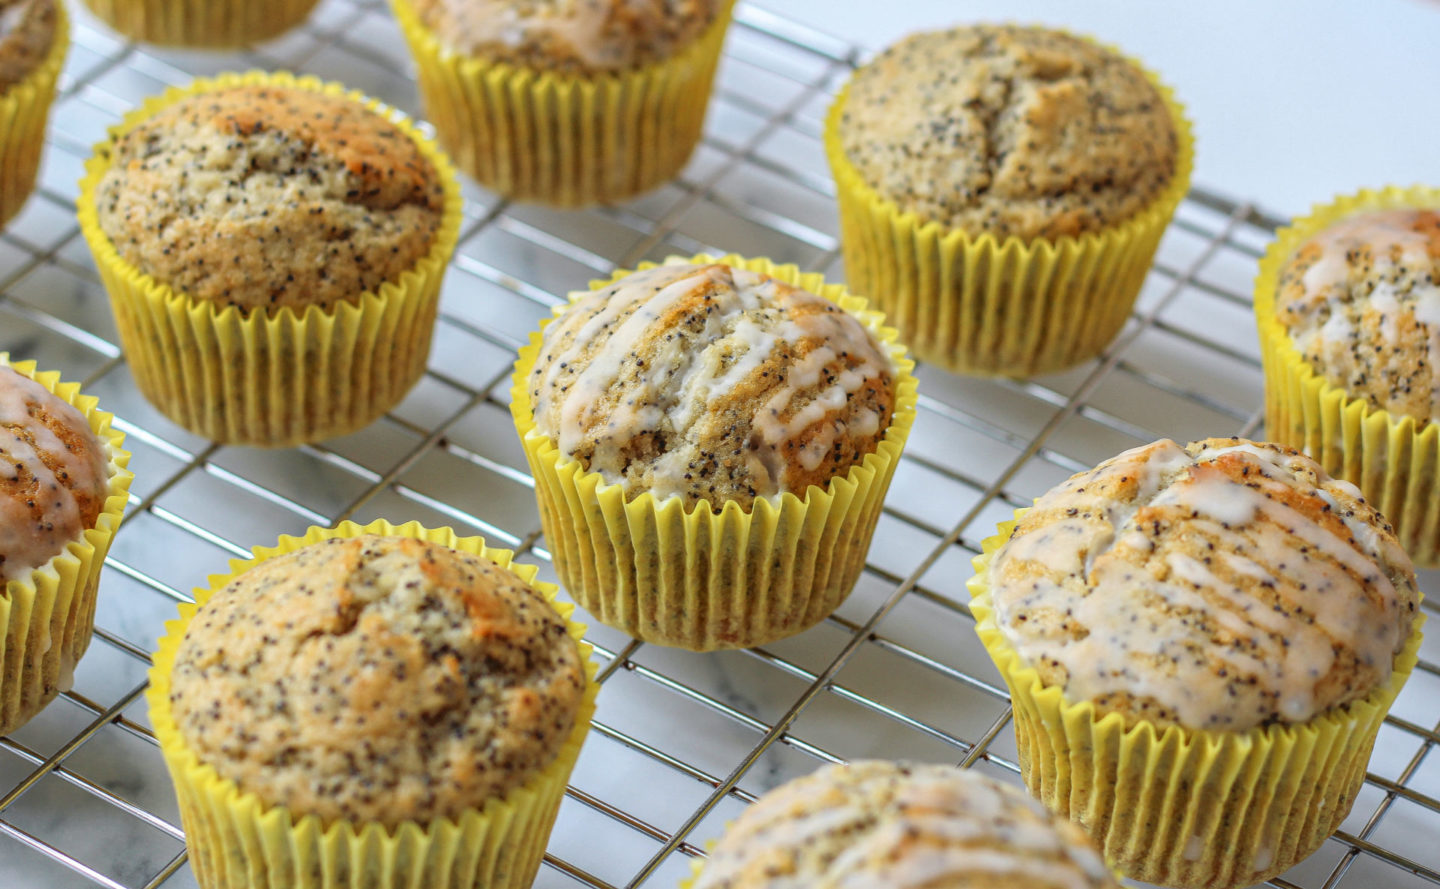 several lemon poppy seed muffins with and without lemon glaze on wire rack